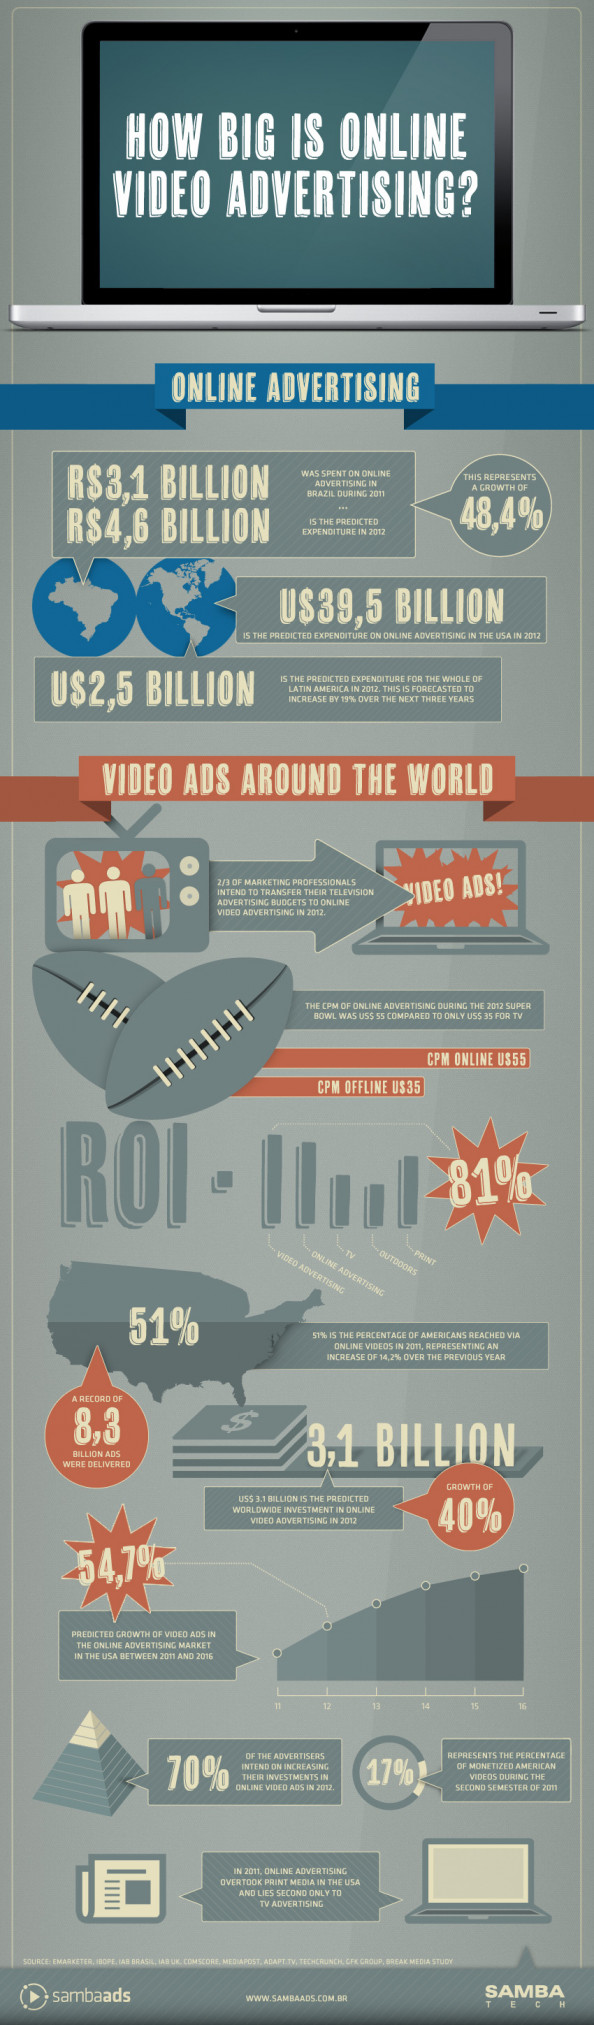 How Big is Online Video Advertising? Infographic